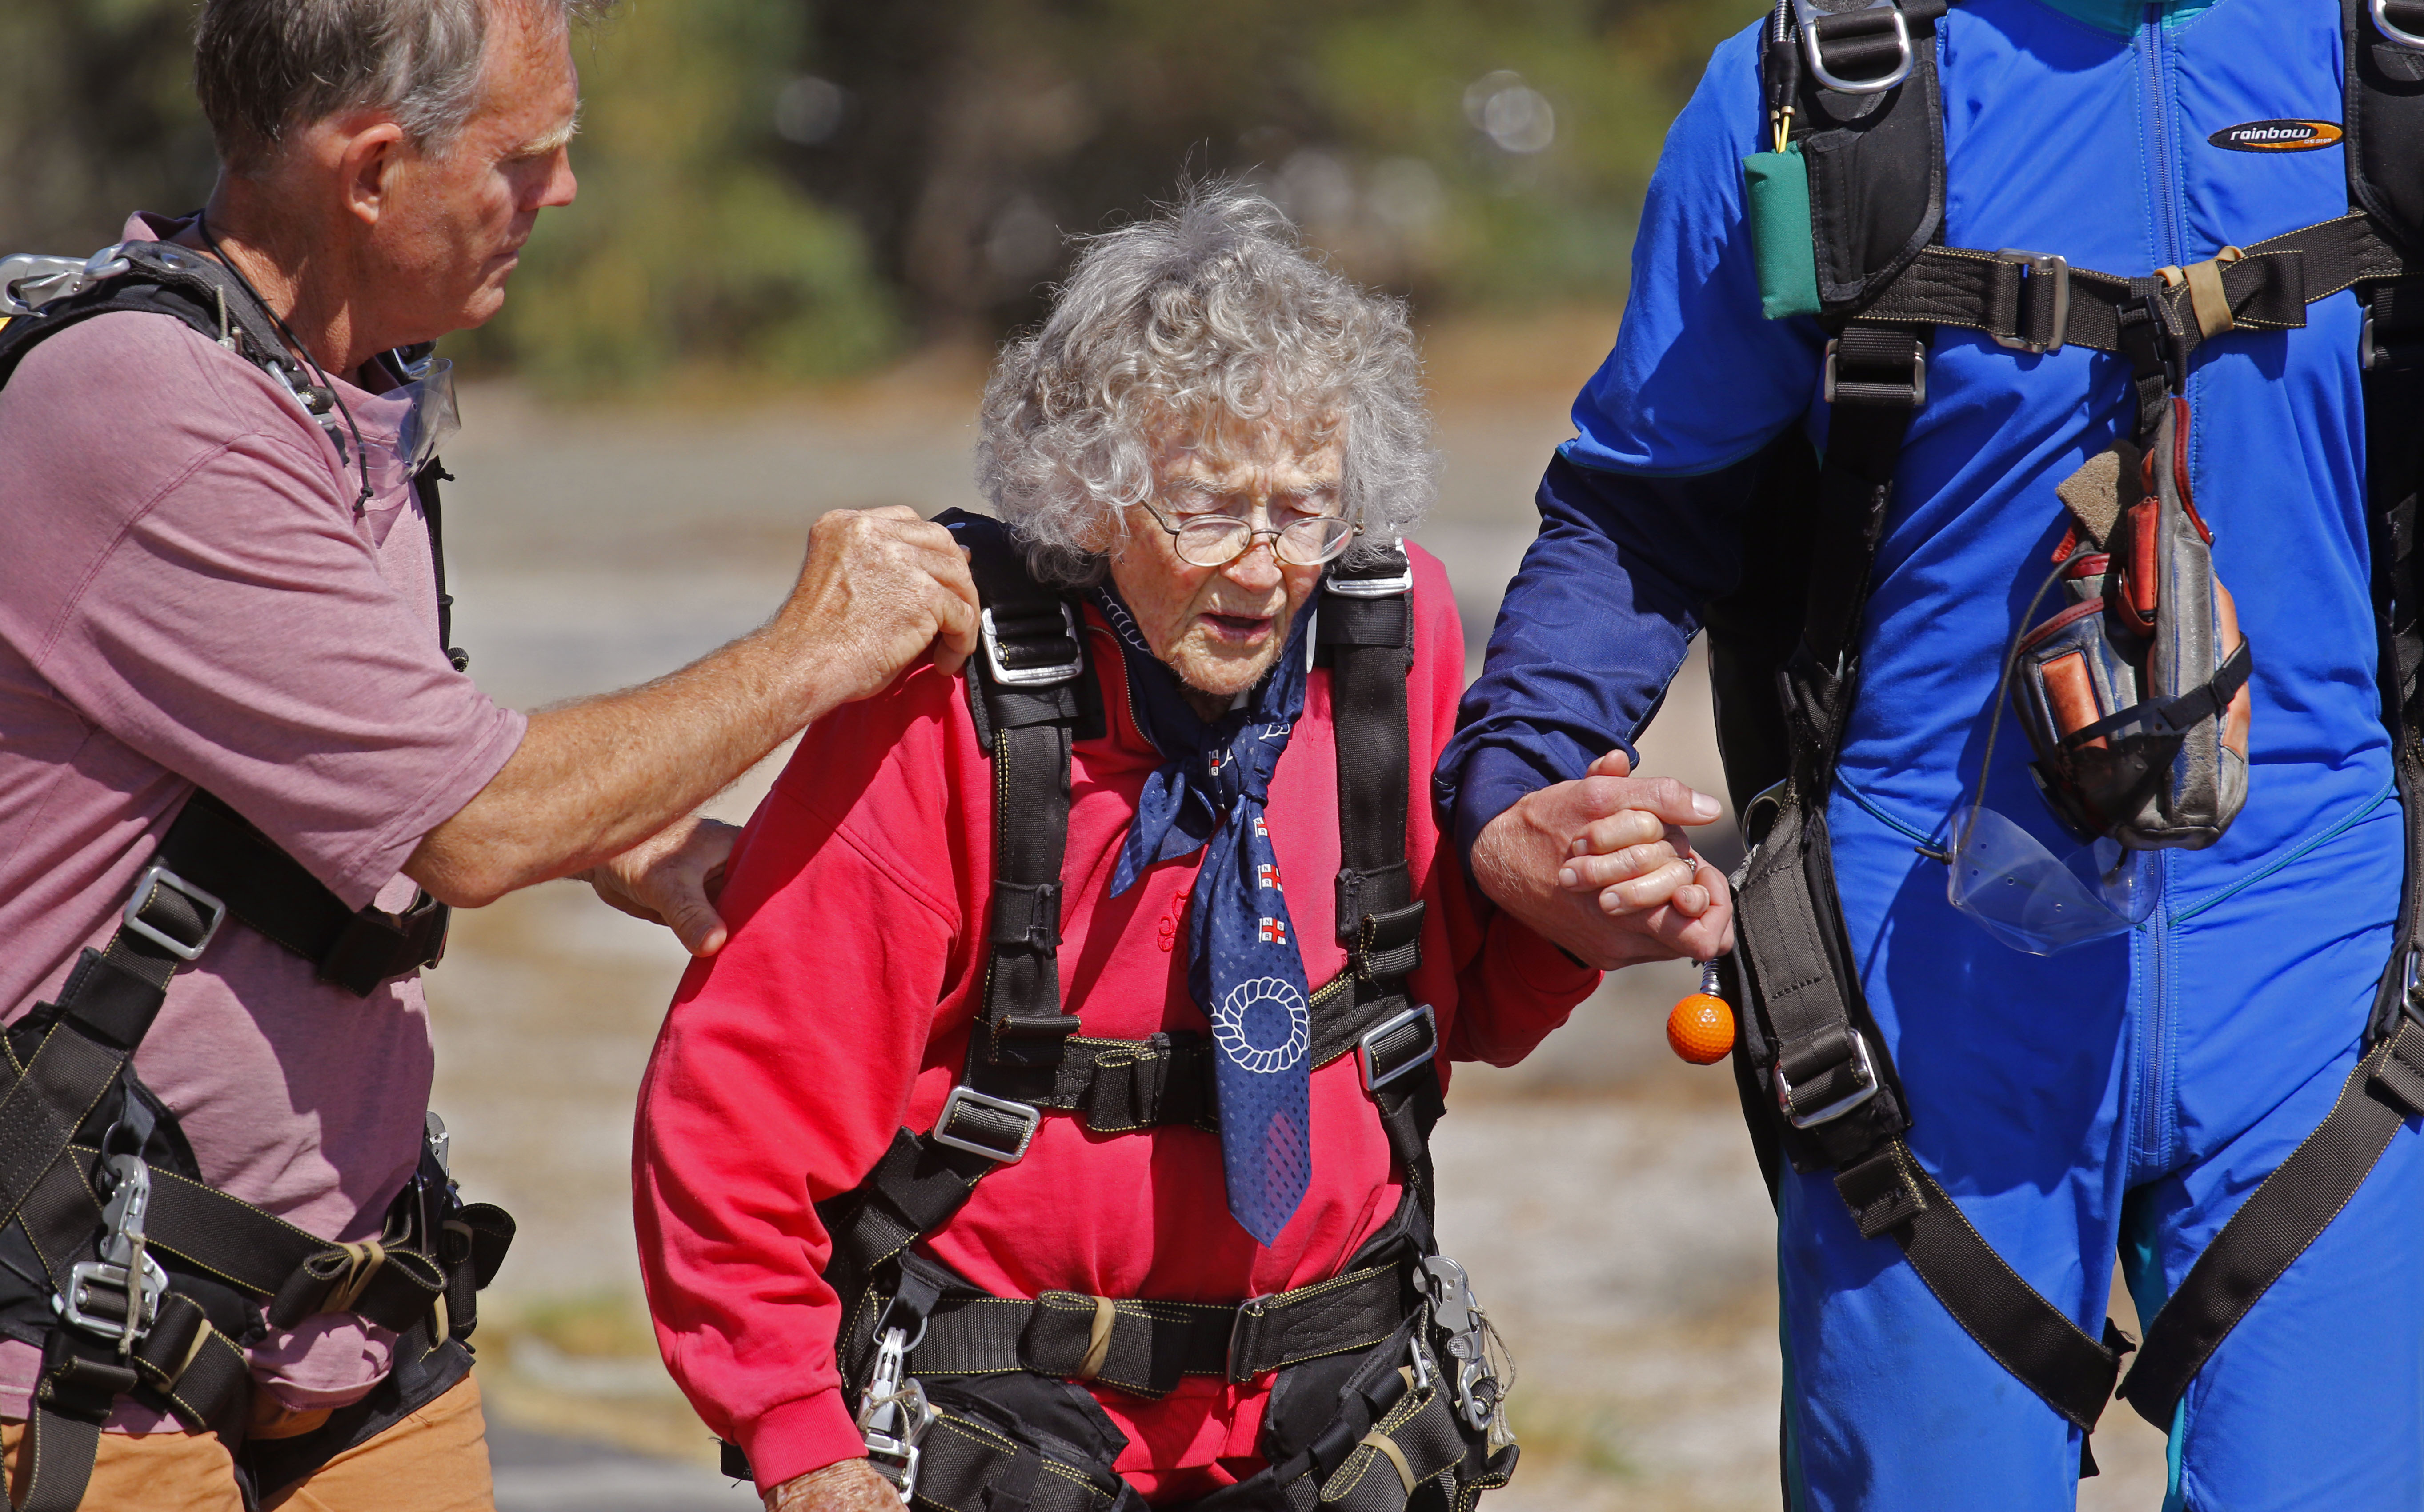 Hundred year old Georgina Harwood walks to the aeroplane before her tandem parachute jump forming part of her birthday celebration in Cape Town, South Africa. Celebrating her 100th birthday with a parachute jump is not enough for South African Georgina Harwood. She plans to make her centenary even more exciting by doing a shark cage dive on Monday. (AP Photo/Schalk van Zuydam)